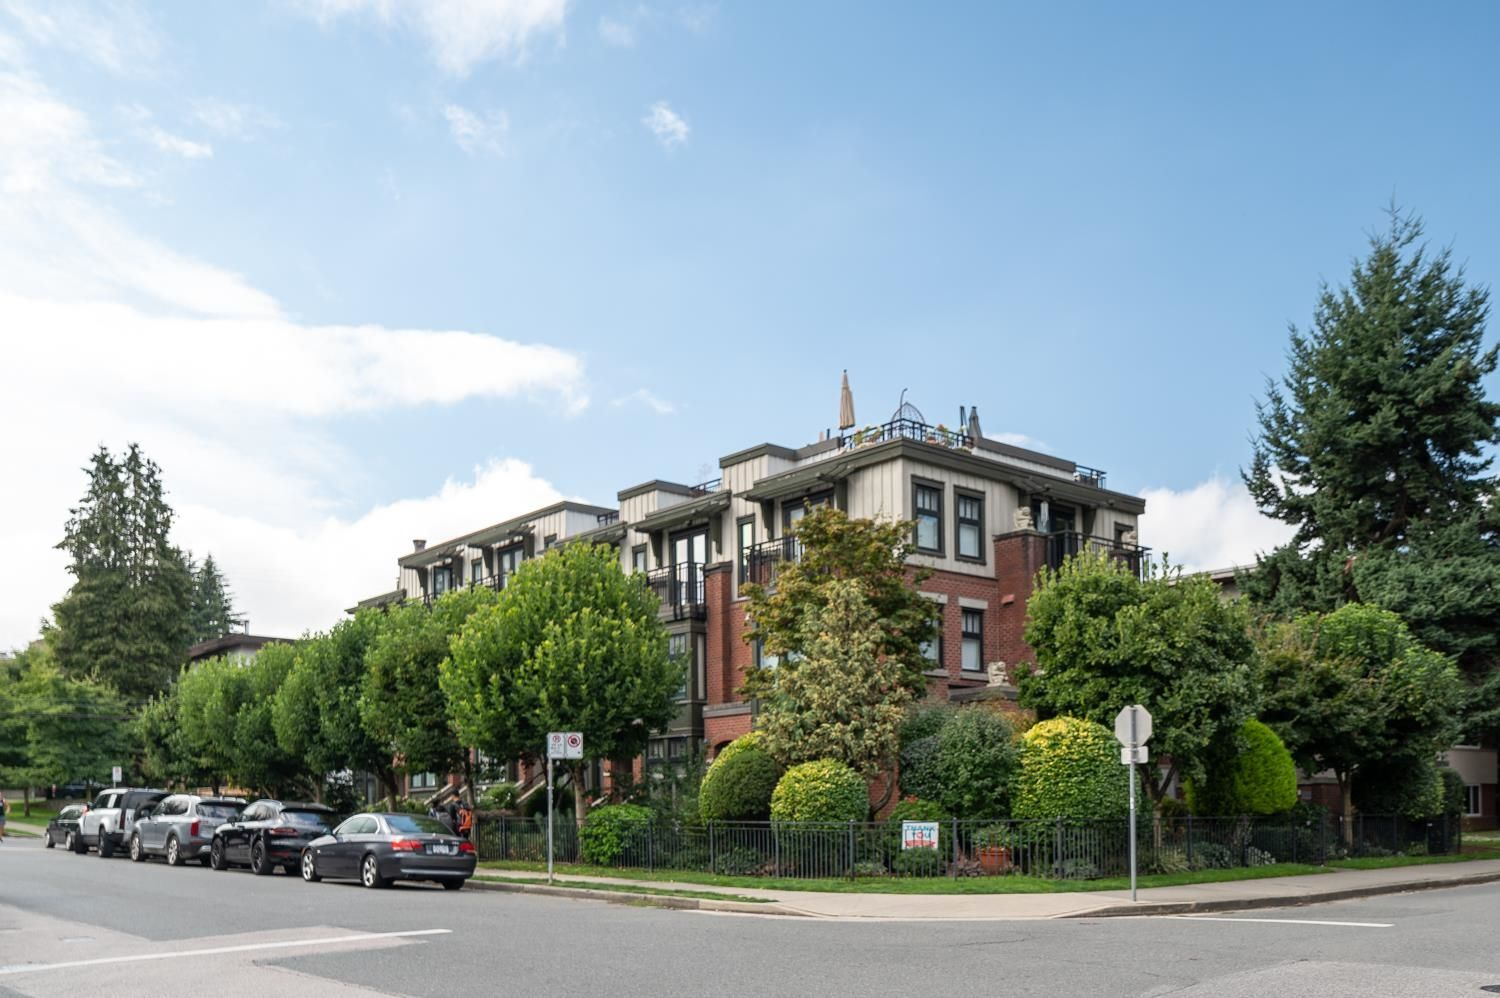 """Main Photo: 1719 MAPLE Street in Vancouver: Kitsilano Townhouse for sale in """"The Townhomes on Maple"""" (Vancouver West)  : MLS®# R2617762"""